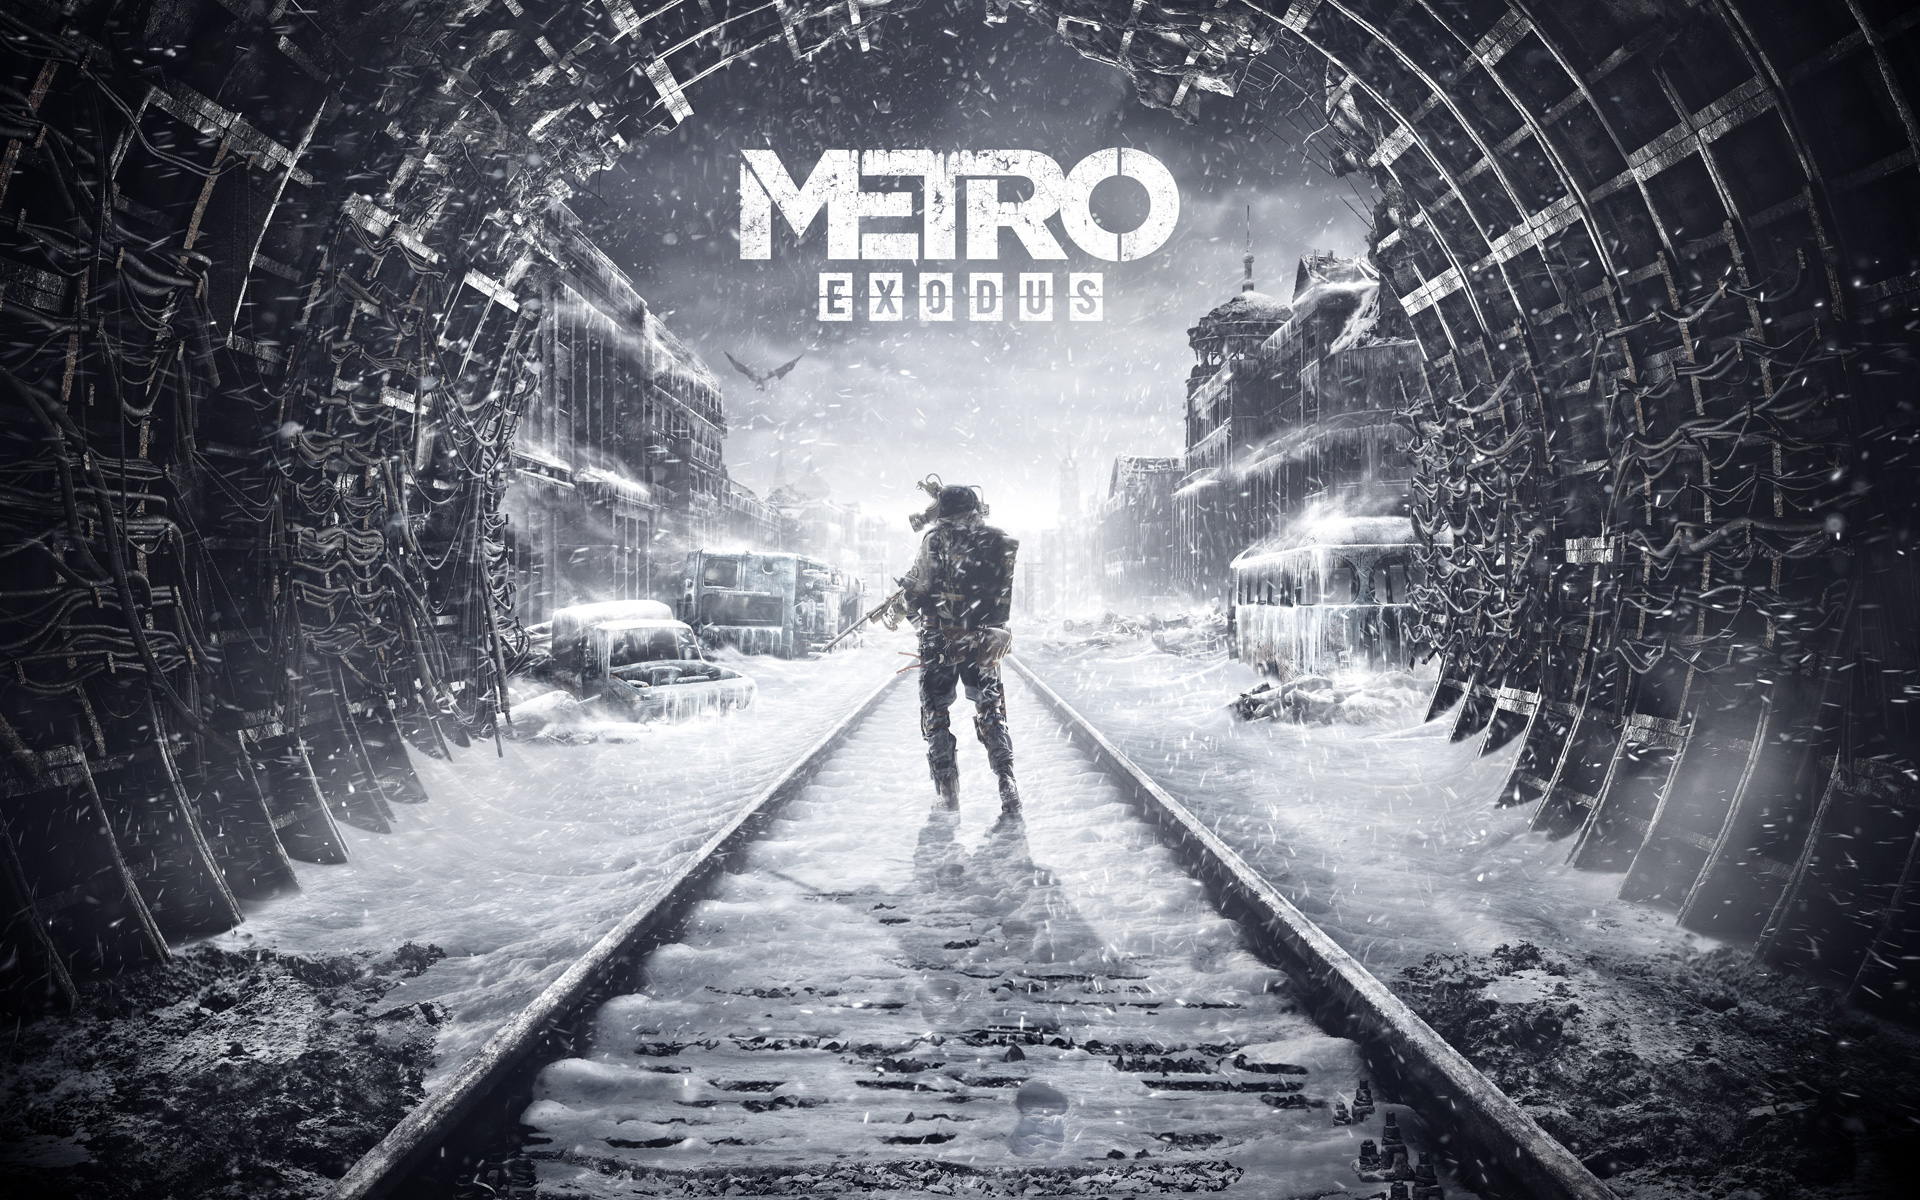 Metro Exodus background 1